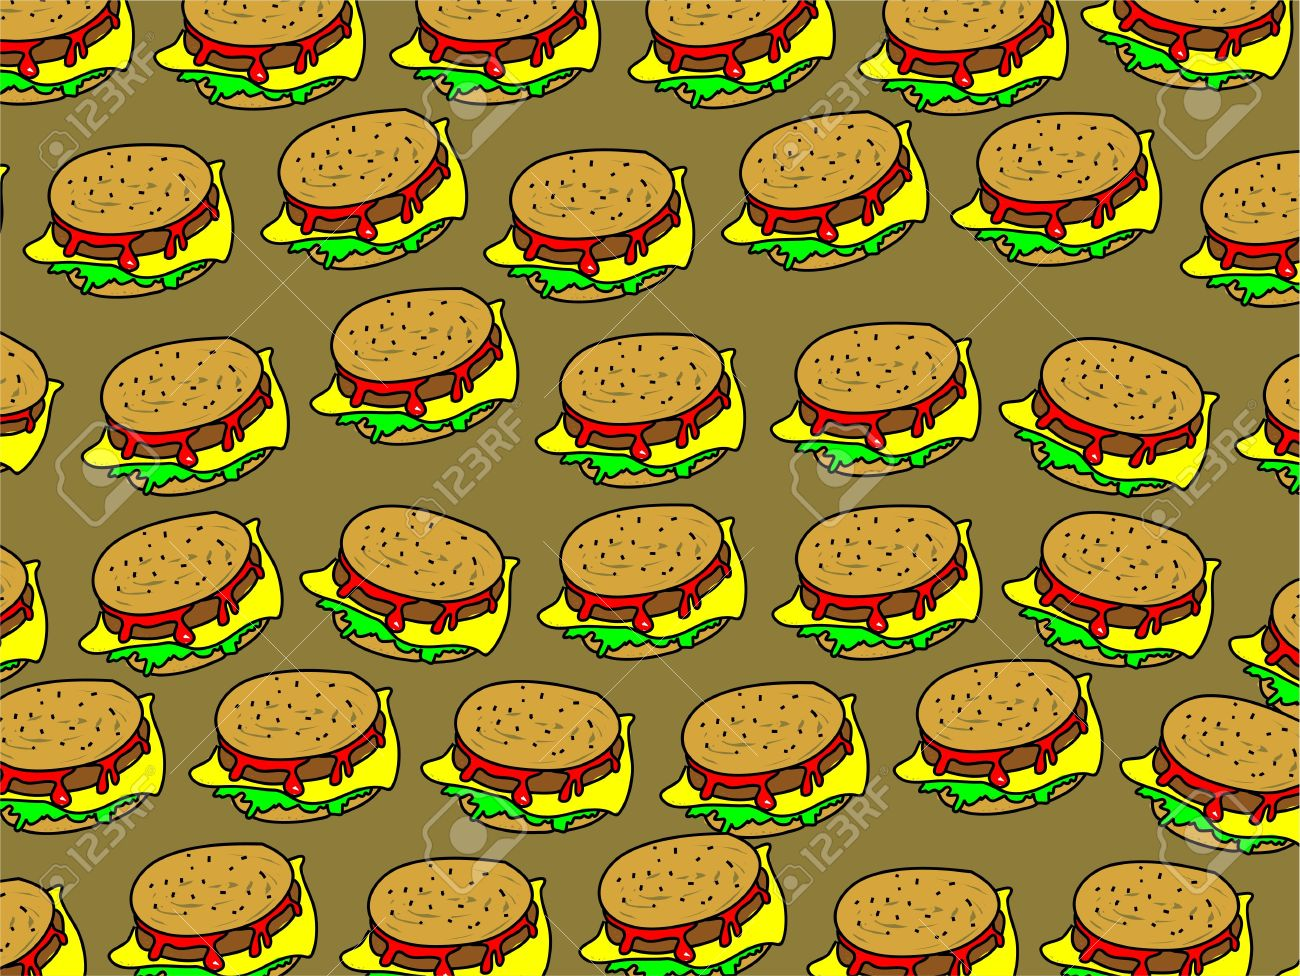 Tasty Salad Cheeseburger Snack Wallpaper Background Design Stock